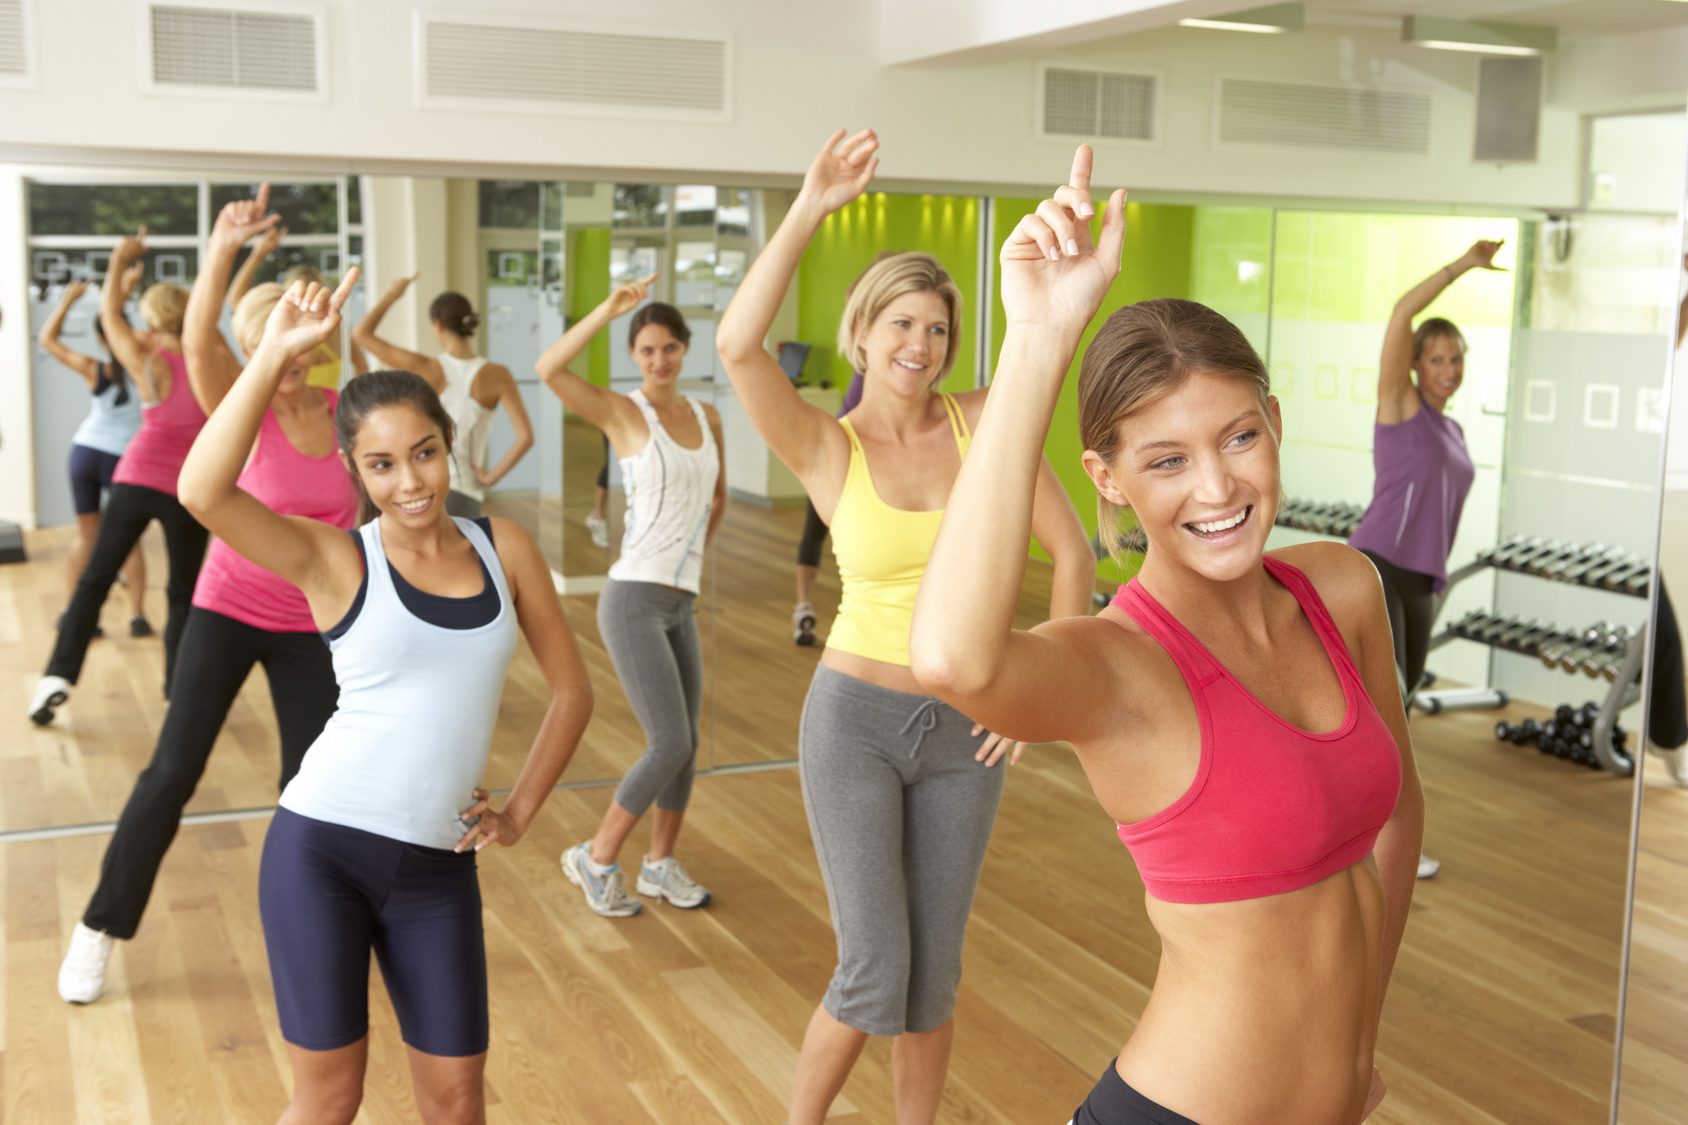 Women Taking Part In Zumba Class In Gym - Hola Mujer